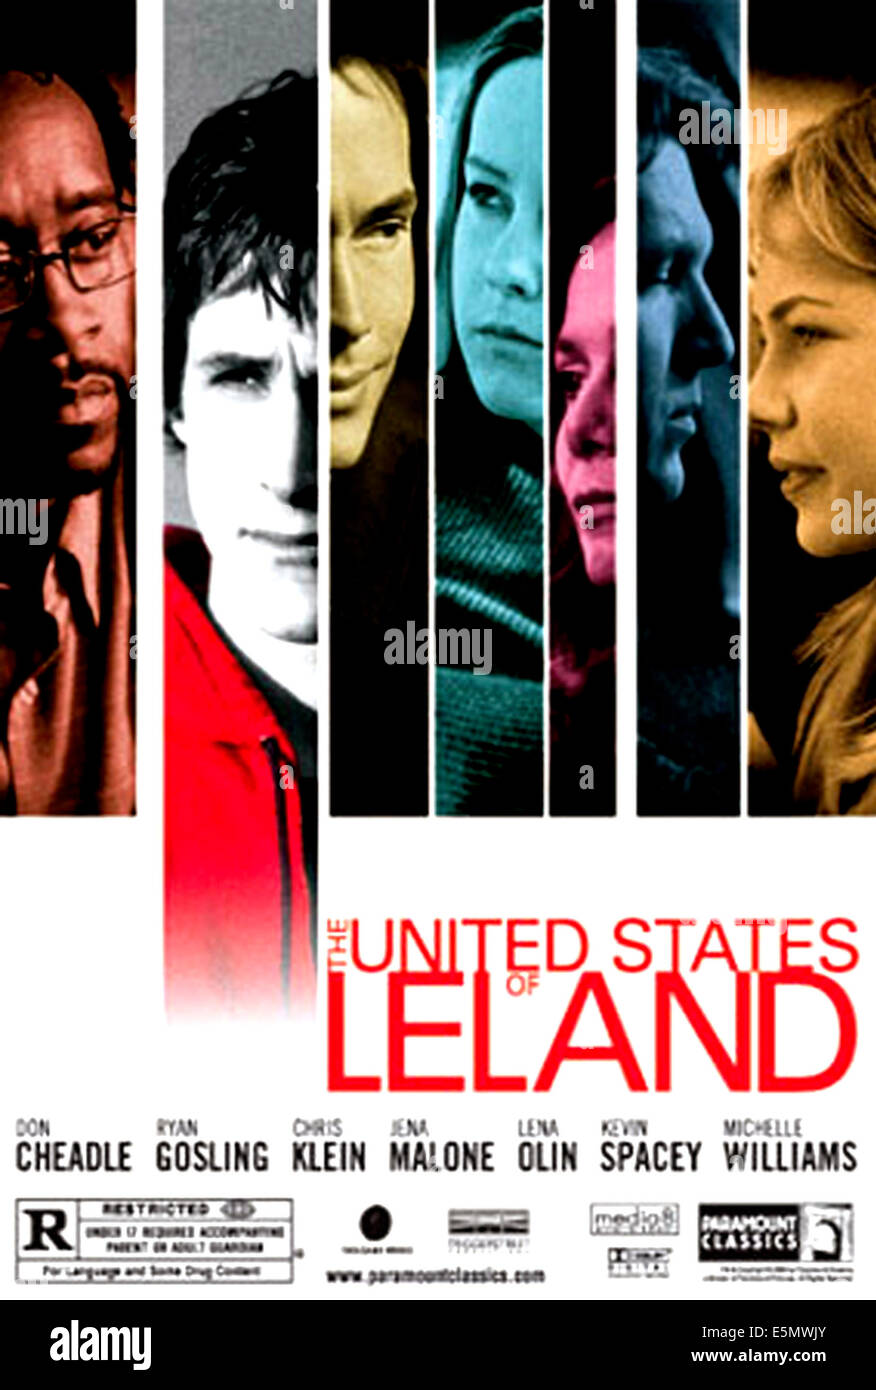 THE UNITED STATES OF LELAND, 2003, (c) Paramount Classics/courtesy Everett Collection - Stock Image